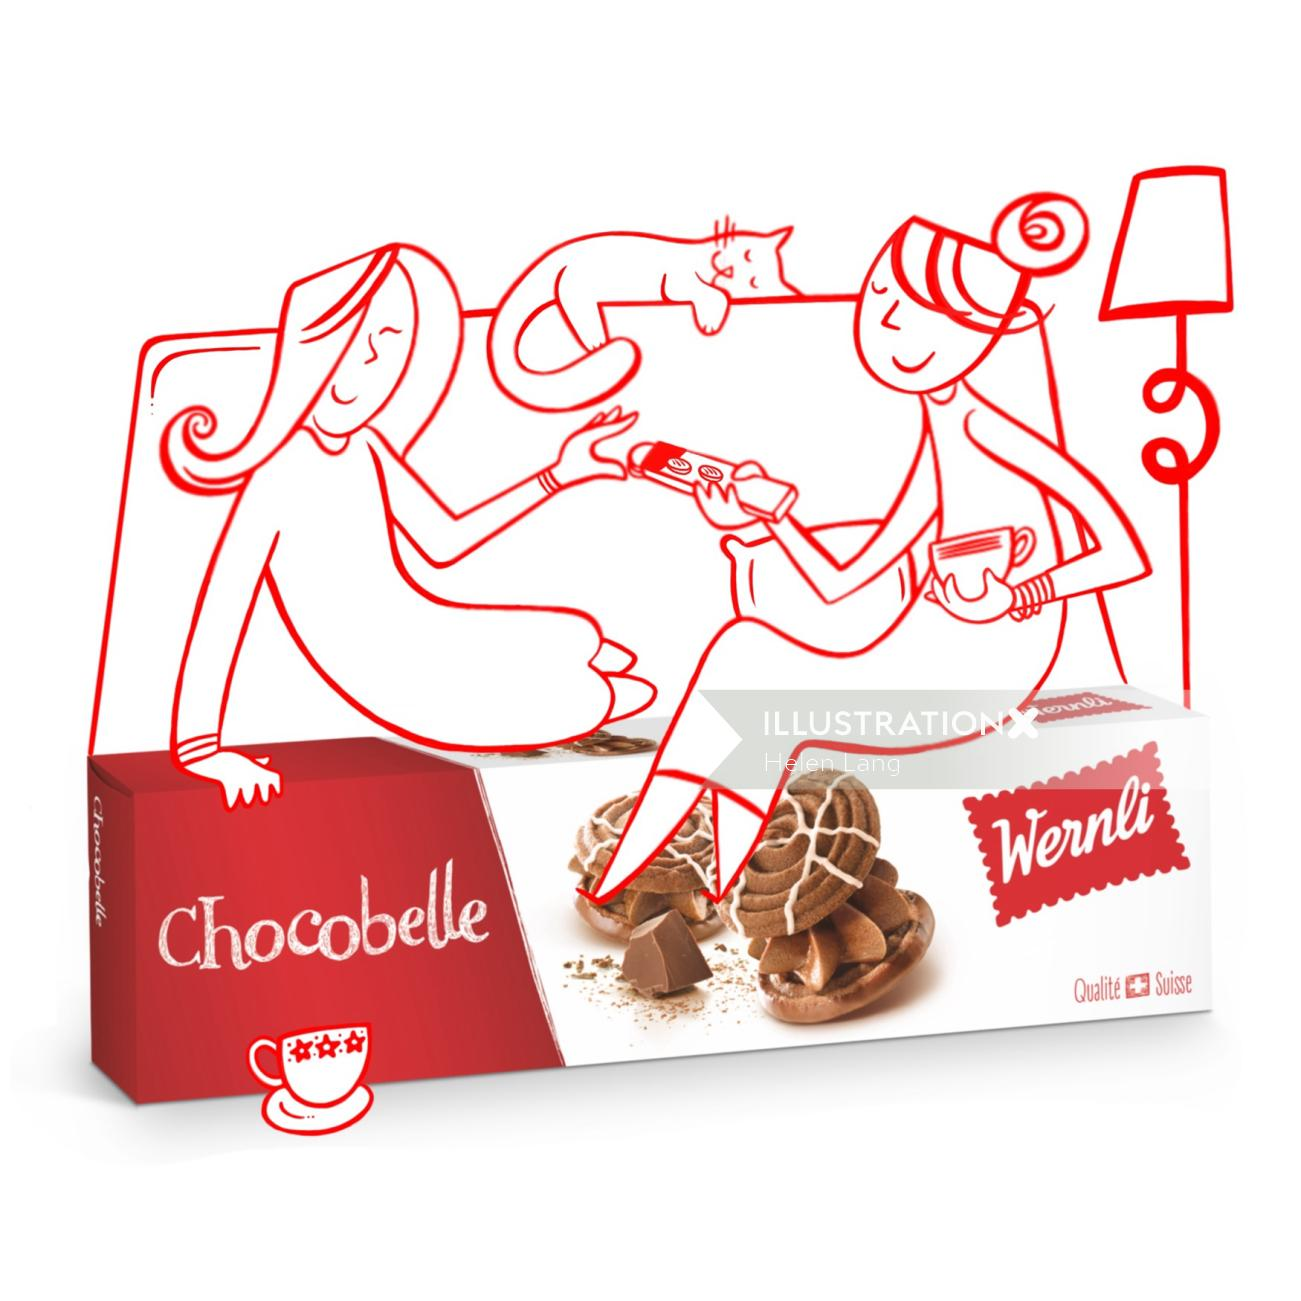 Advertising illustration of chocolate biscuit